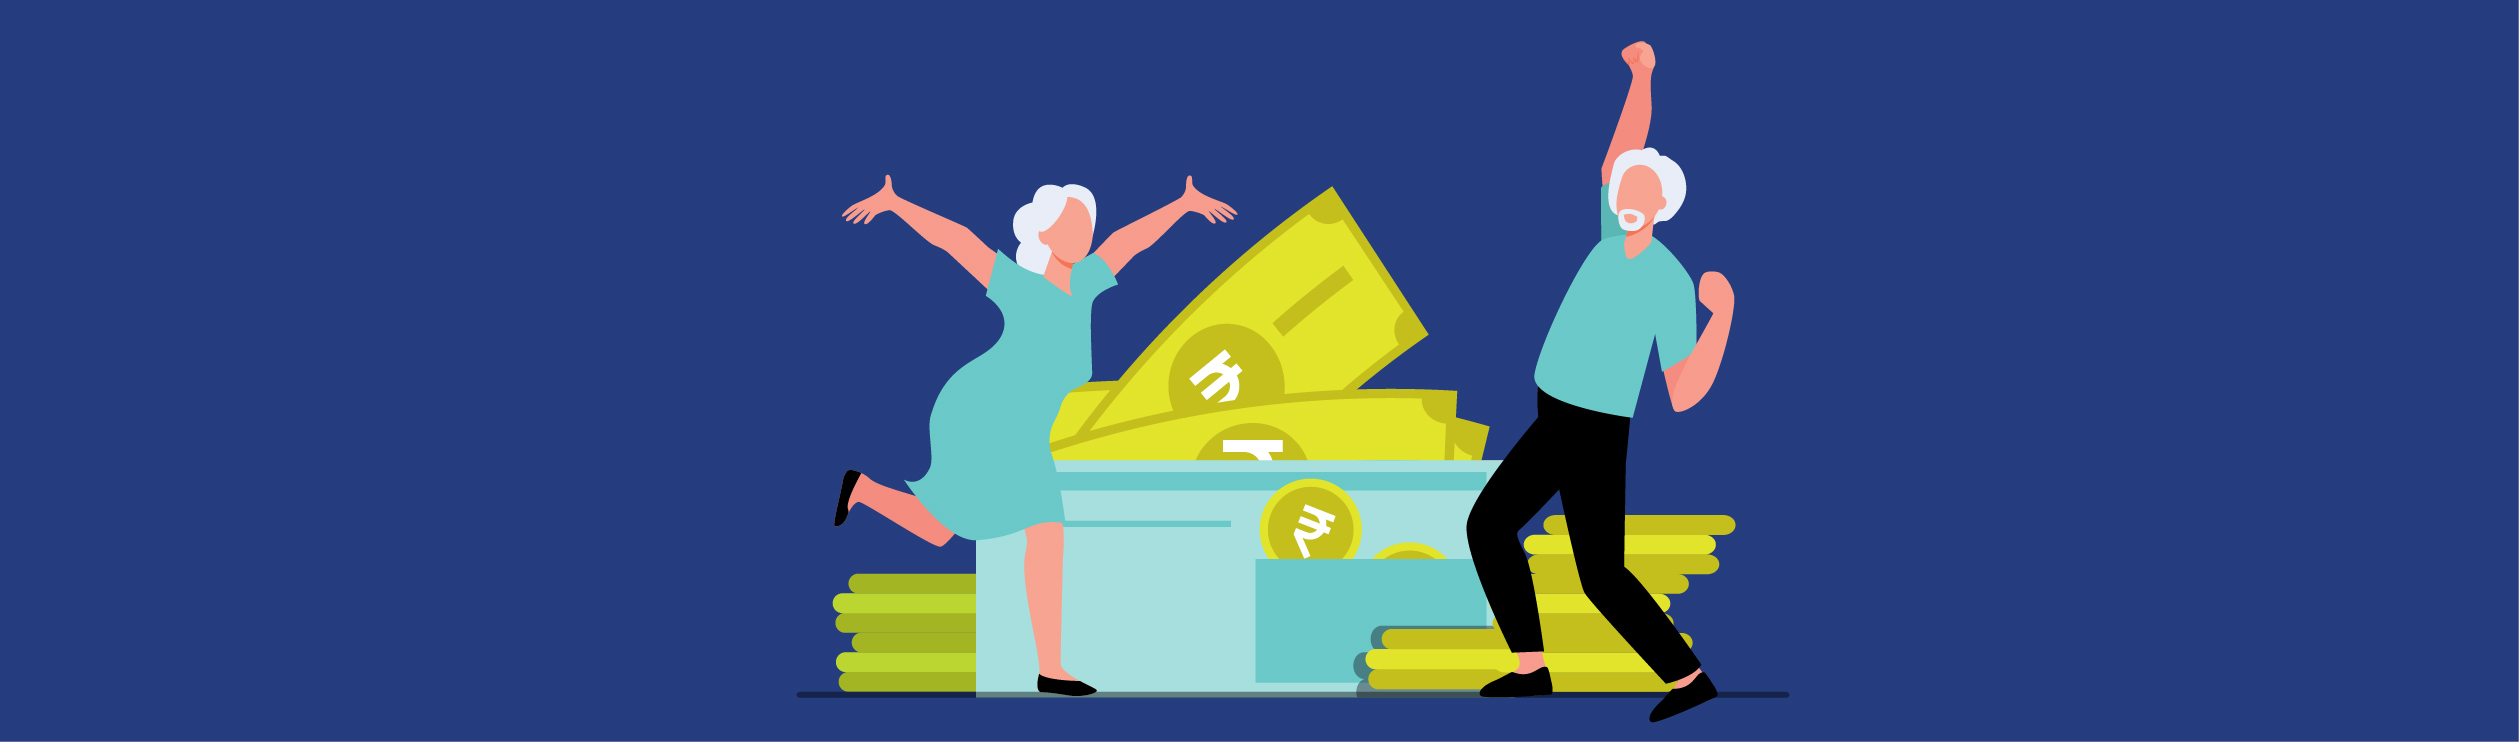 Monthly Income Scheme For Senior Citizens